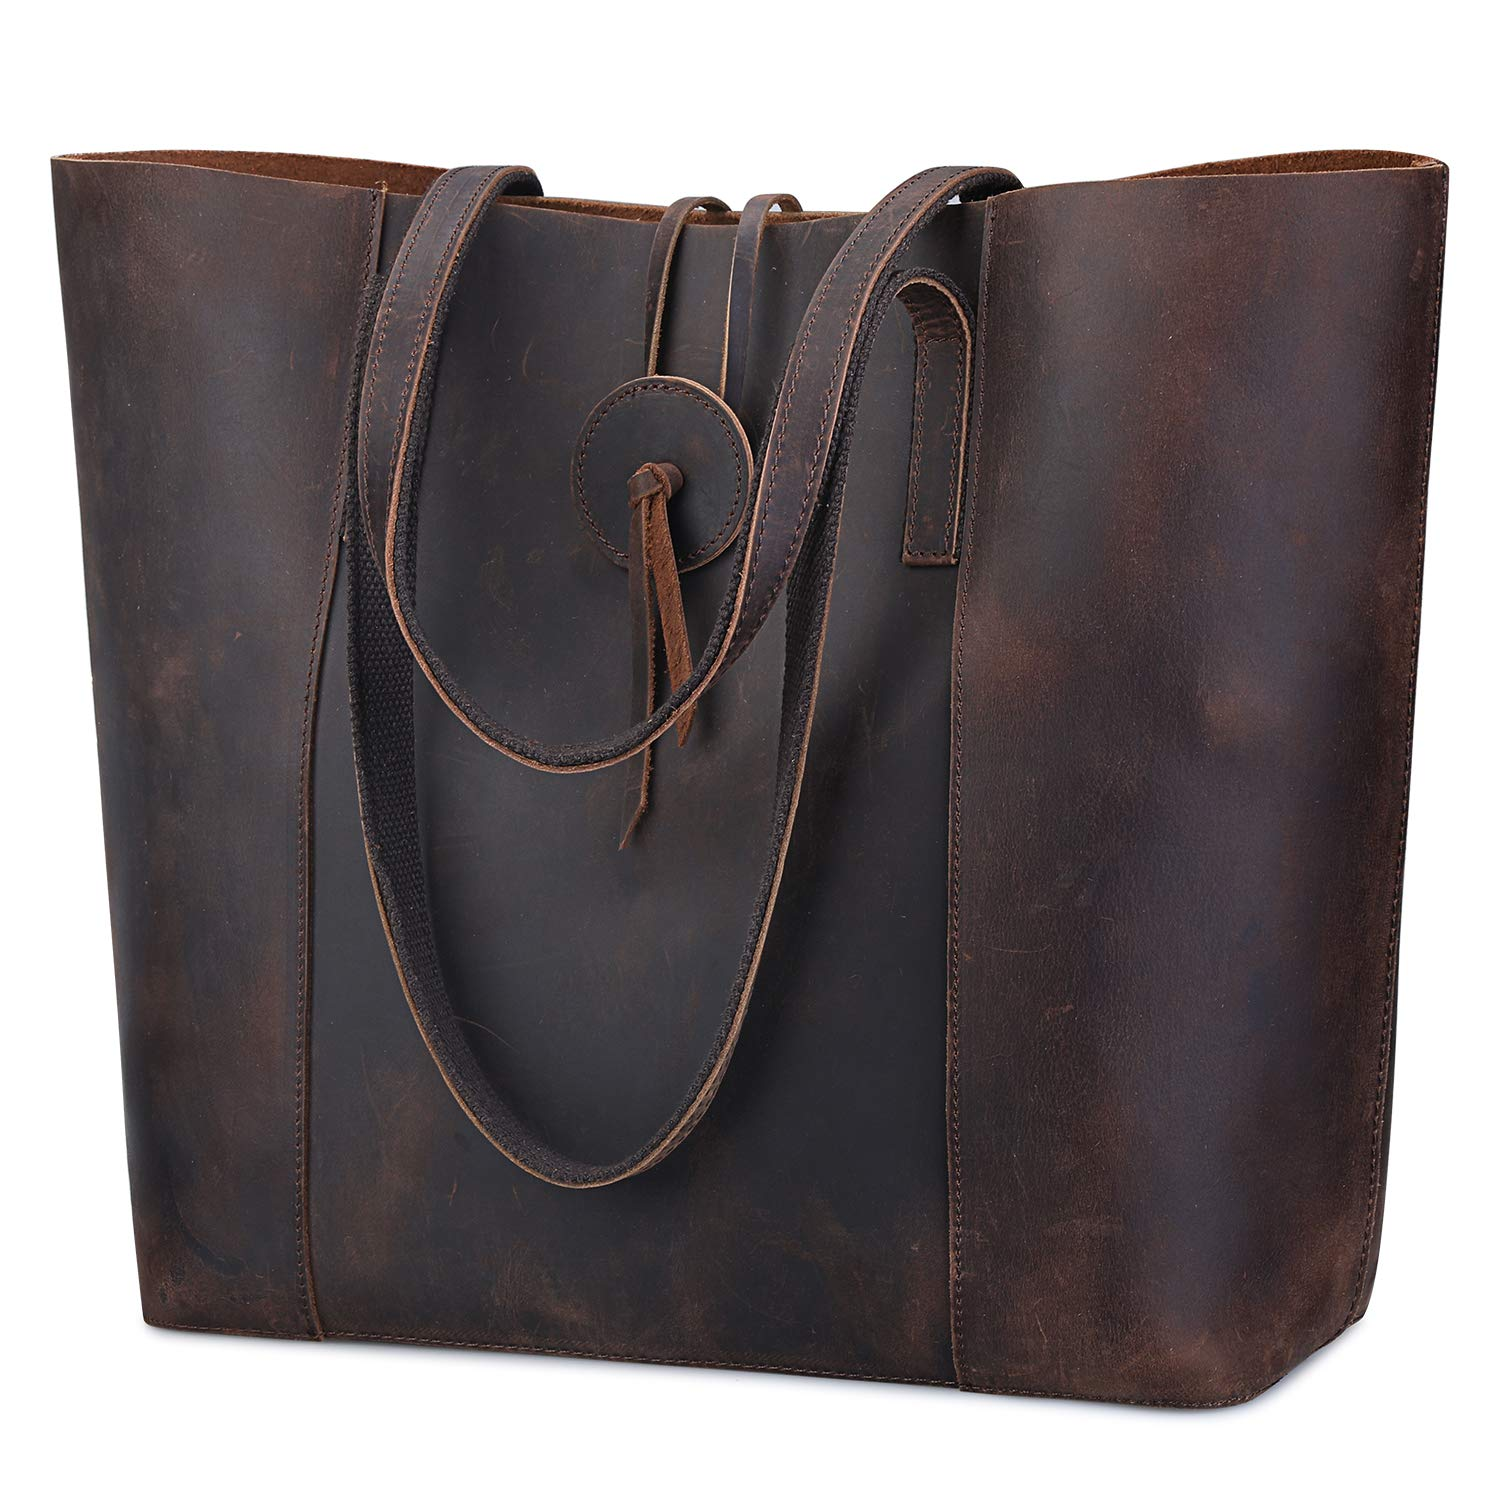 4f3b7901ac6f Amazon.com: S-ZONE Vintage Crazy Horse Leather Tote Shoulder Bag Purse with  Removable Pouch (Brown): Clothing